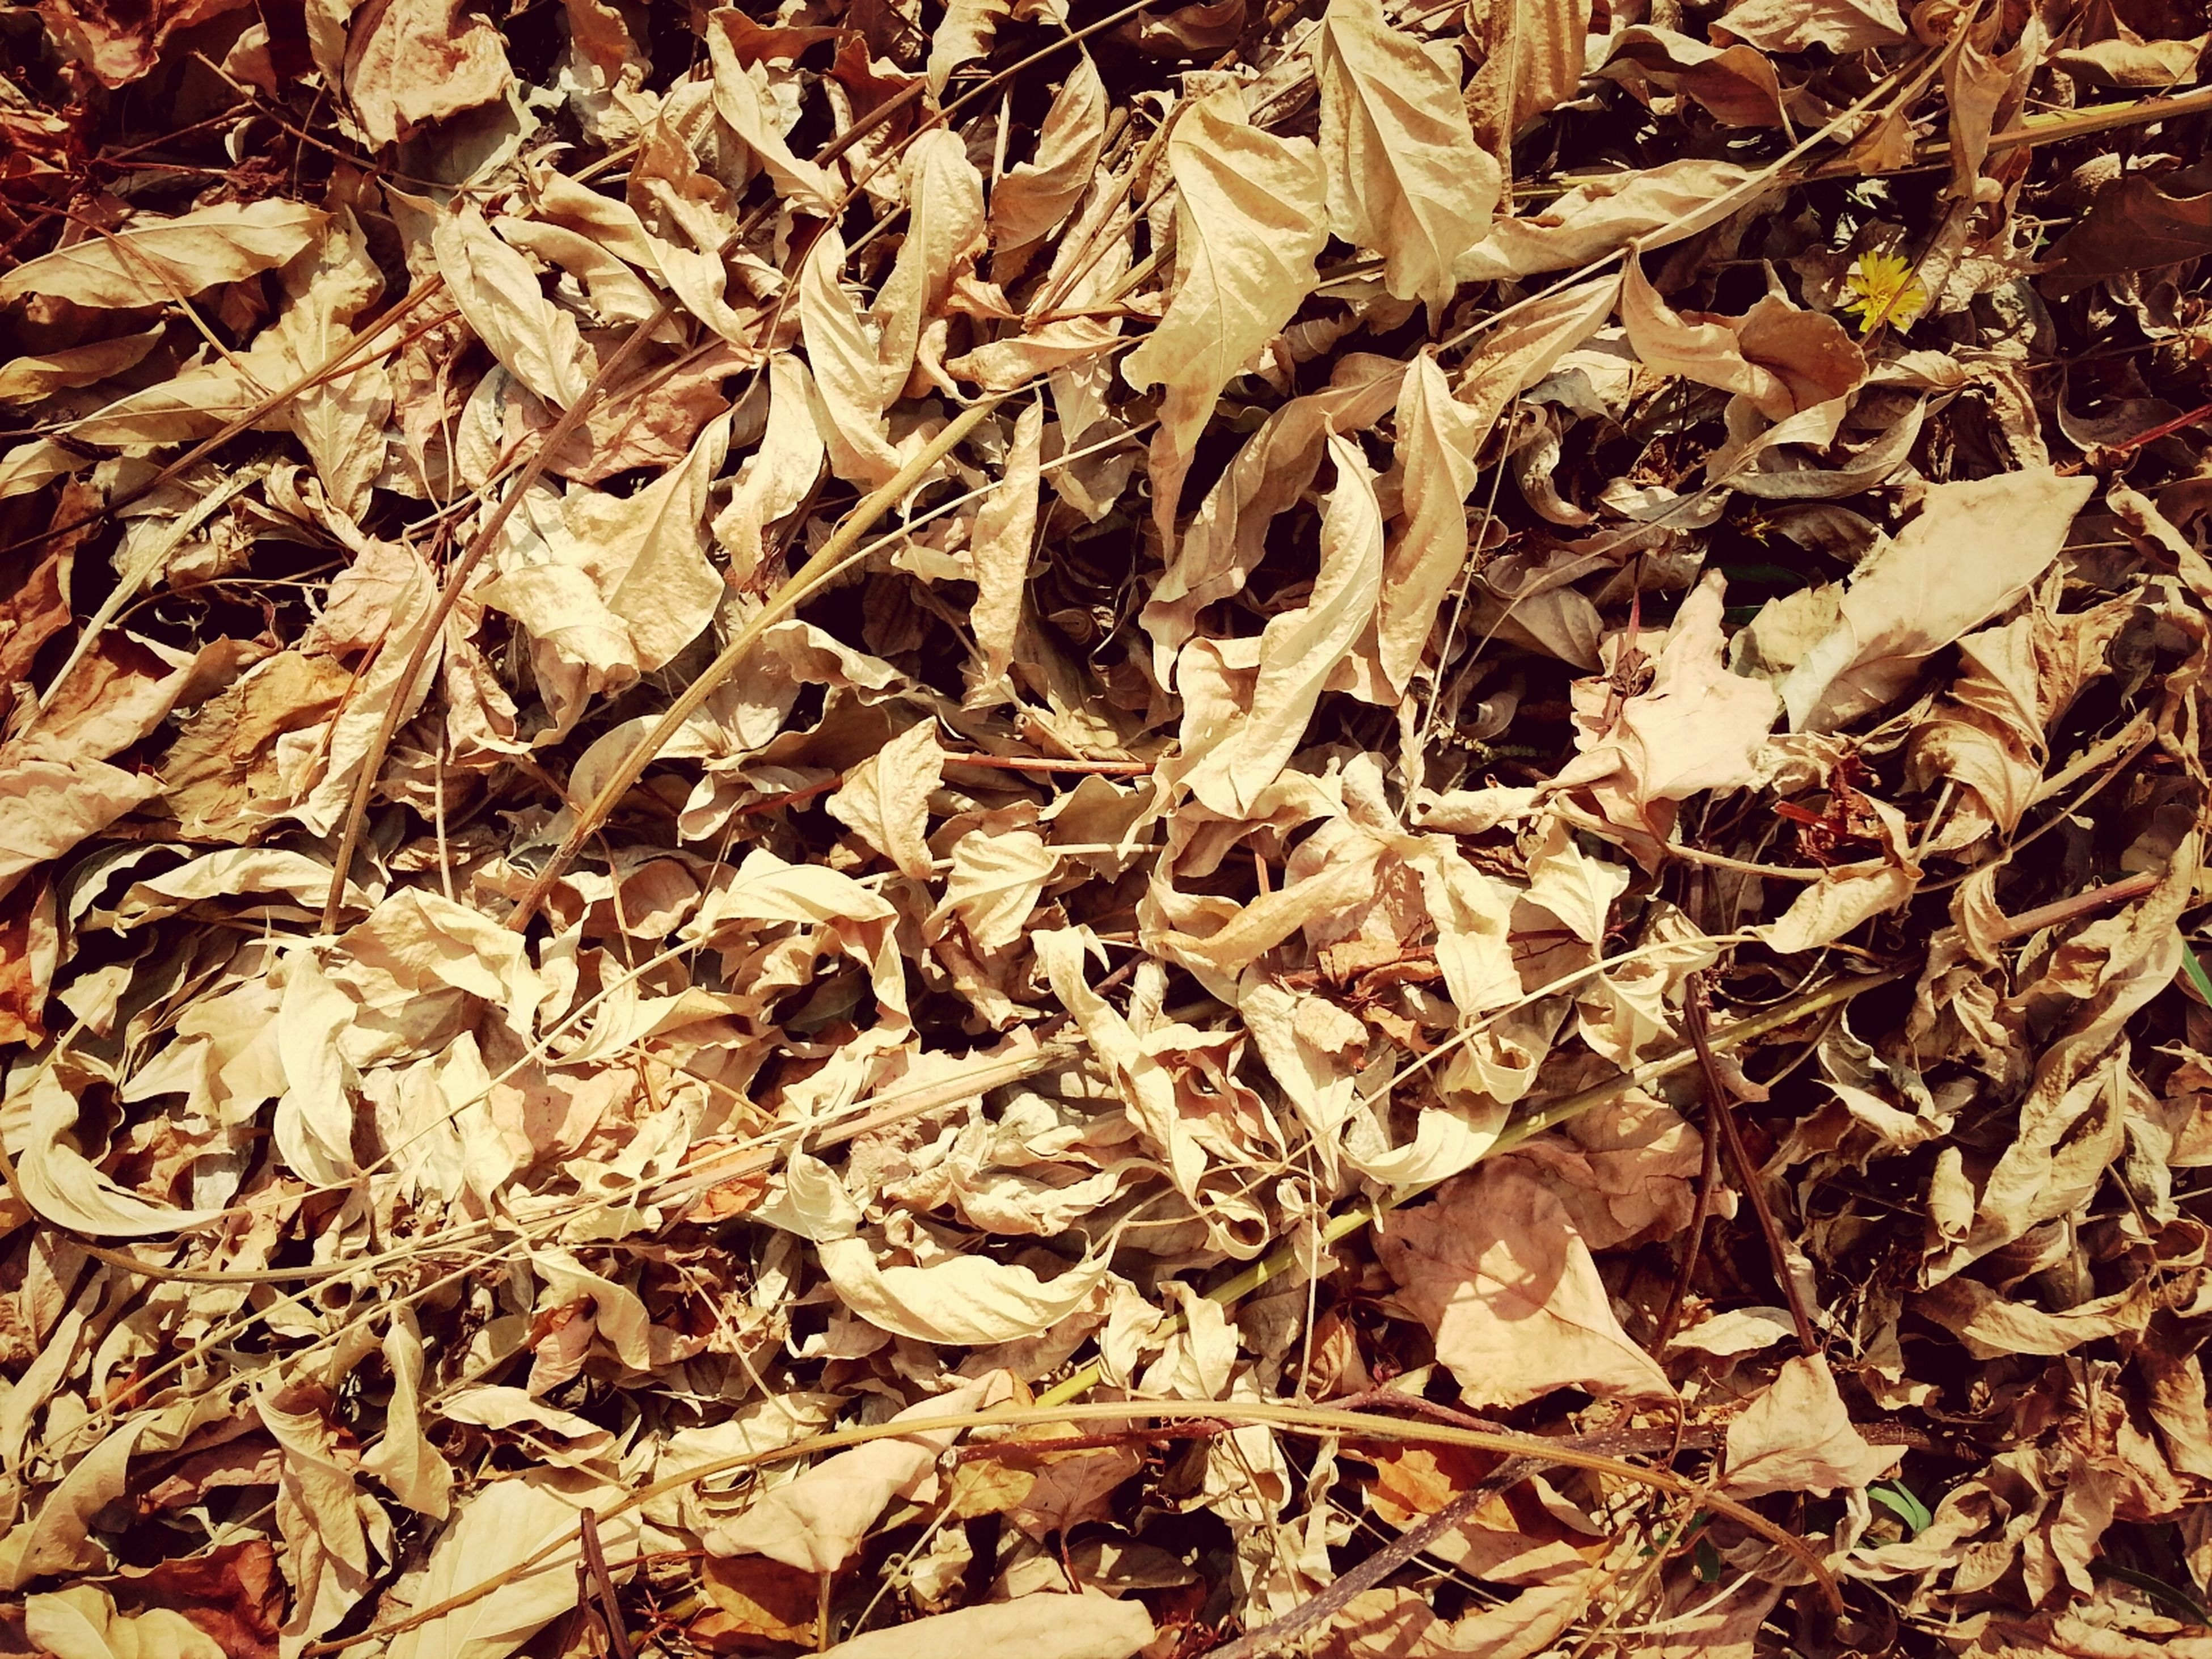 leaf, autumn, dry, change, leaves, full frame, high angle view, abundance, backgrounds, fallen, season, field, nature, ground, falling, day, large group of objects, messy, no people, outdoors